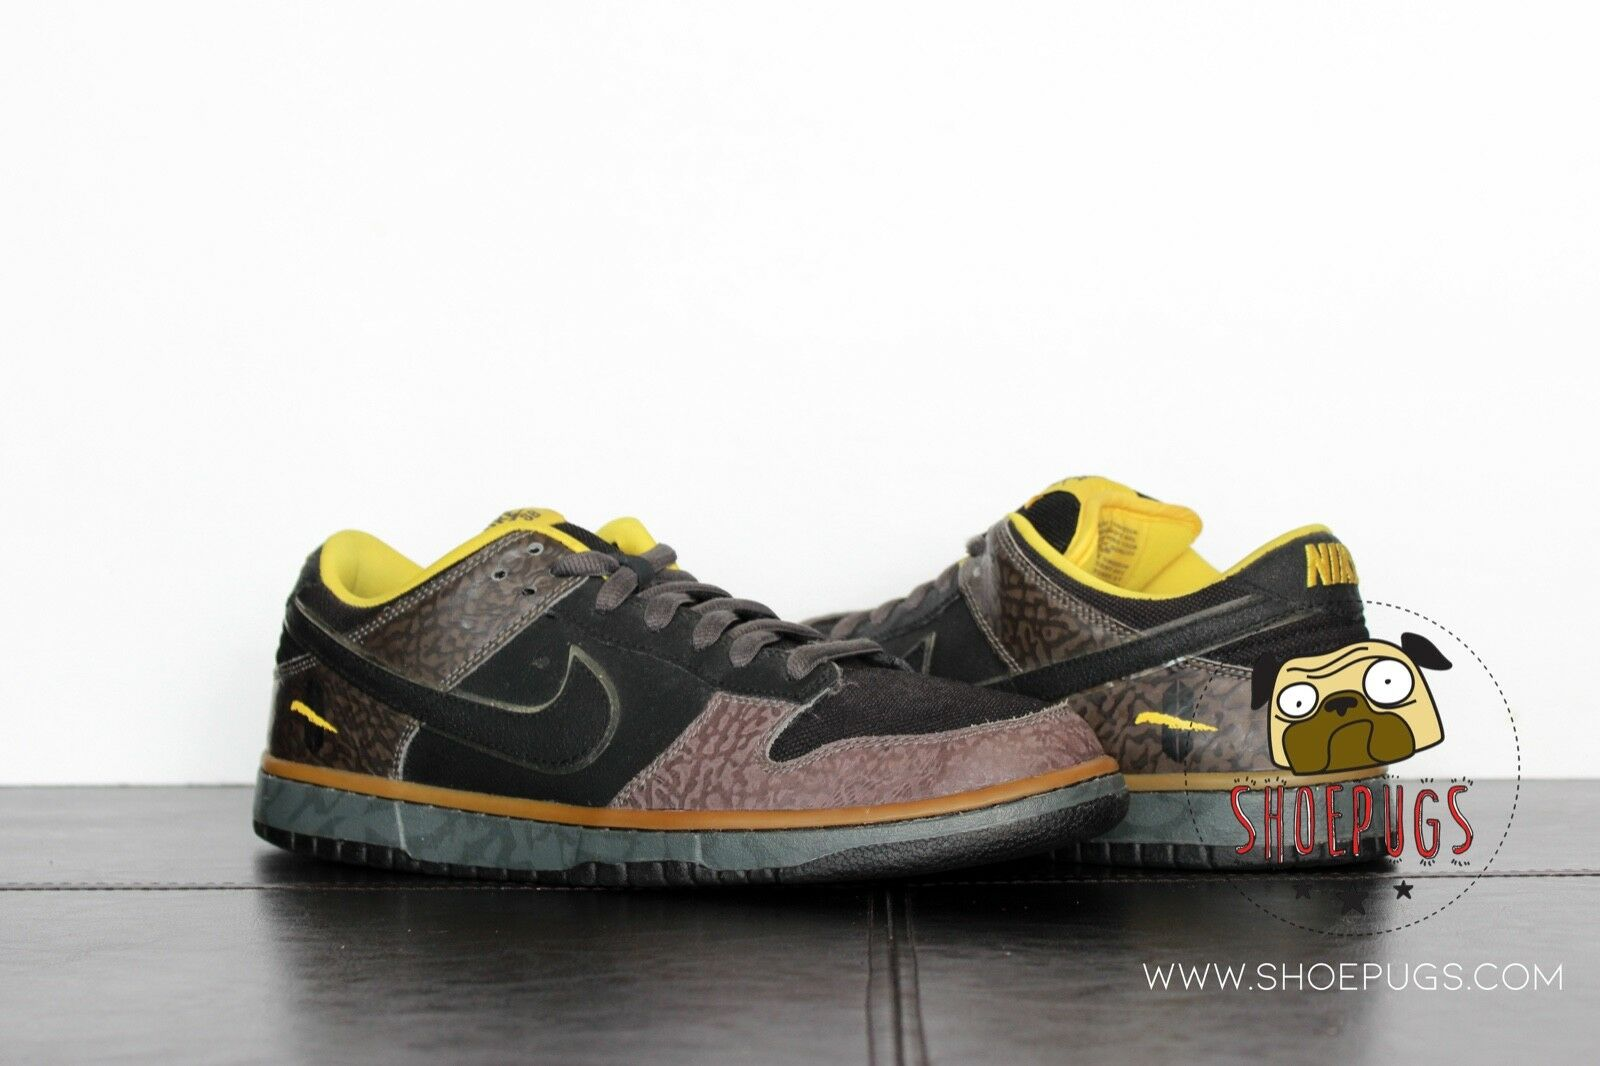 2010 Nike SB Dunk Low Yellow Curb sz 9.5 w  Box fog yellow   TRUSTED SELLER